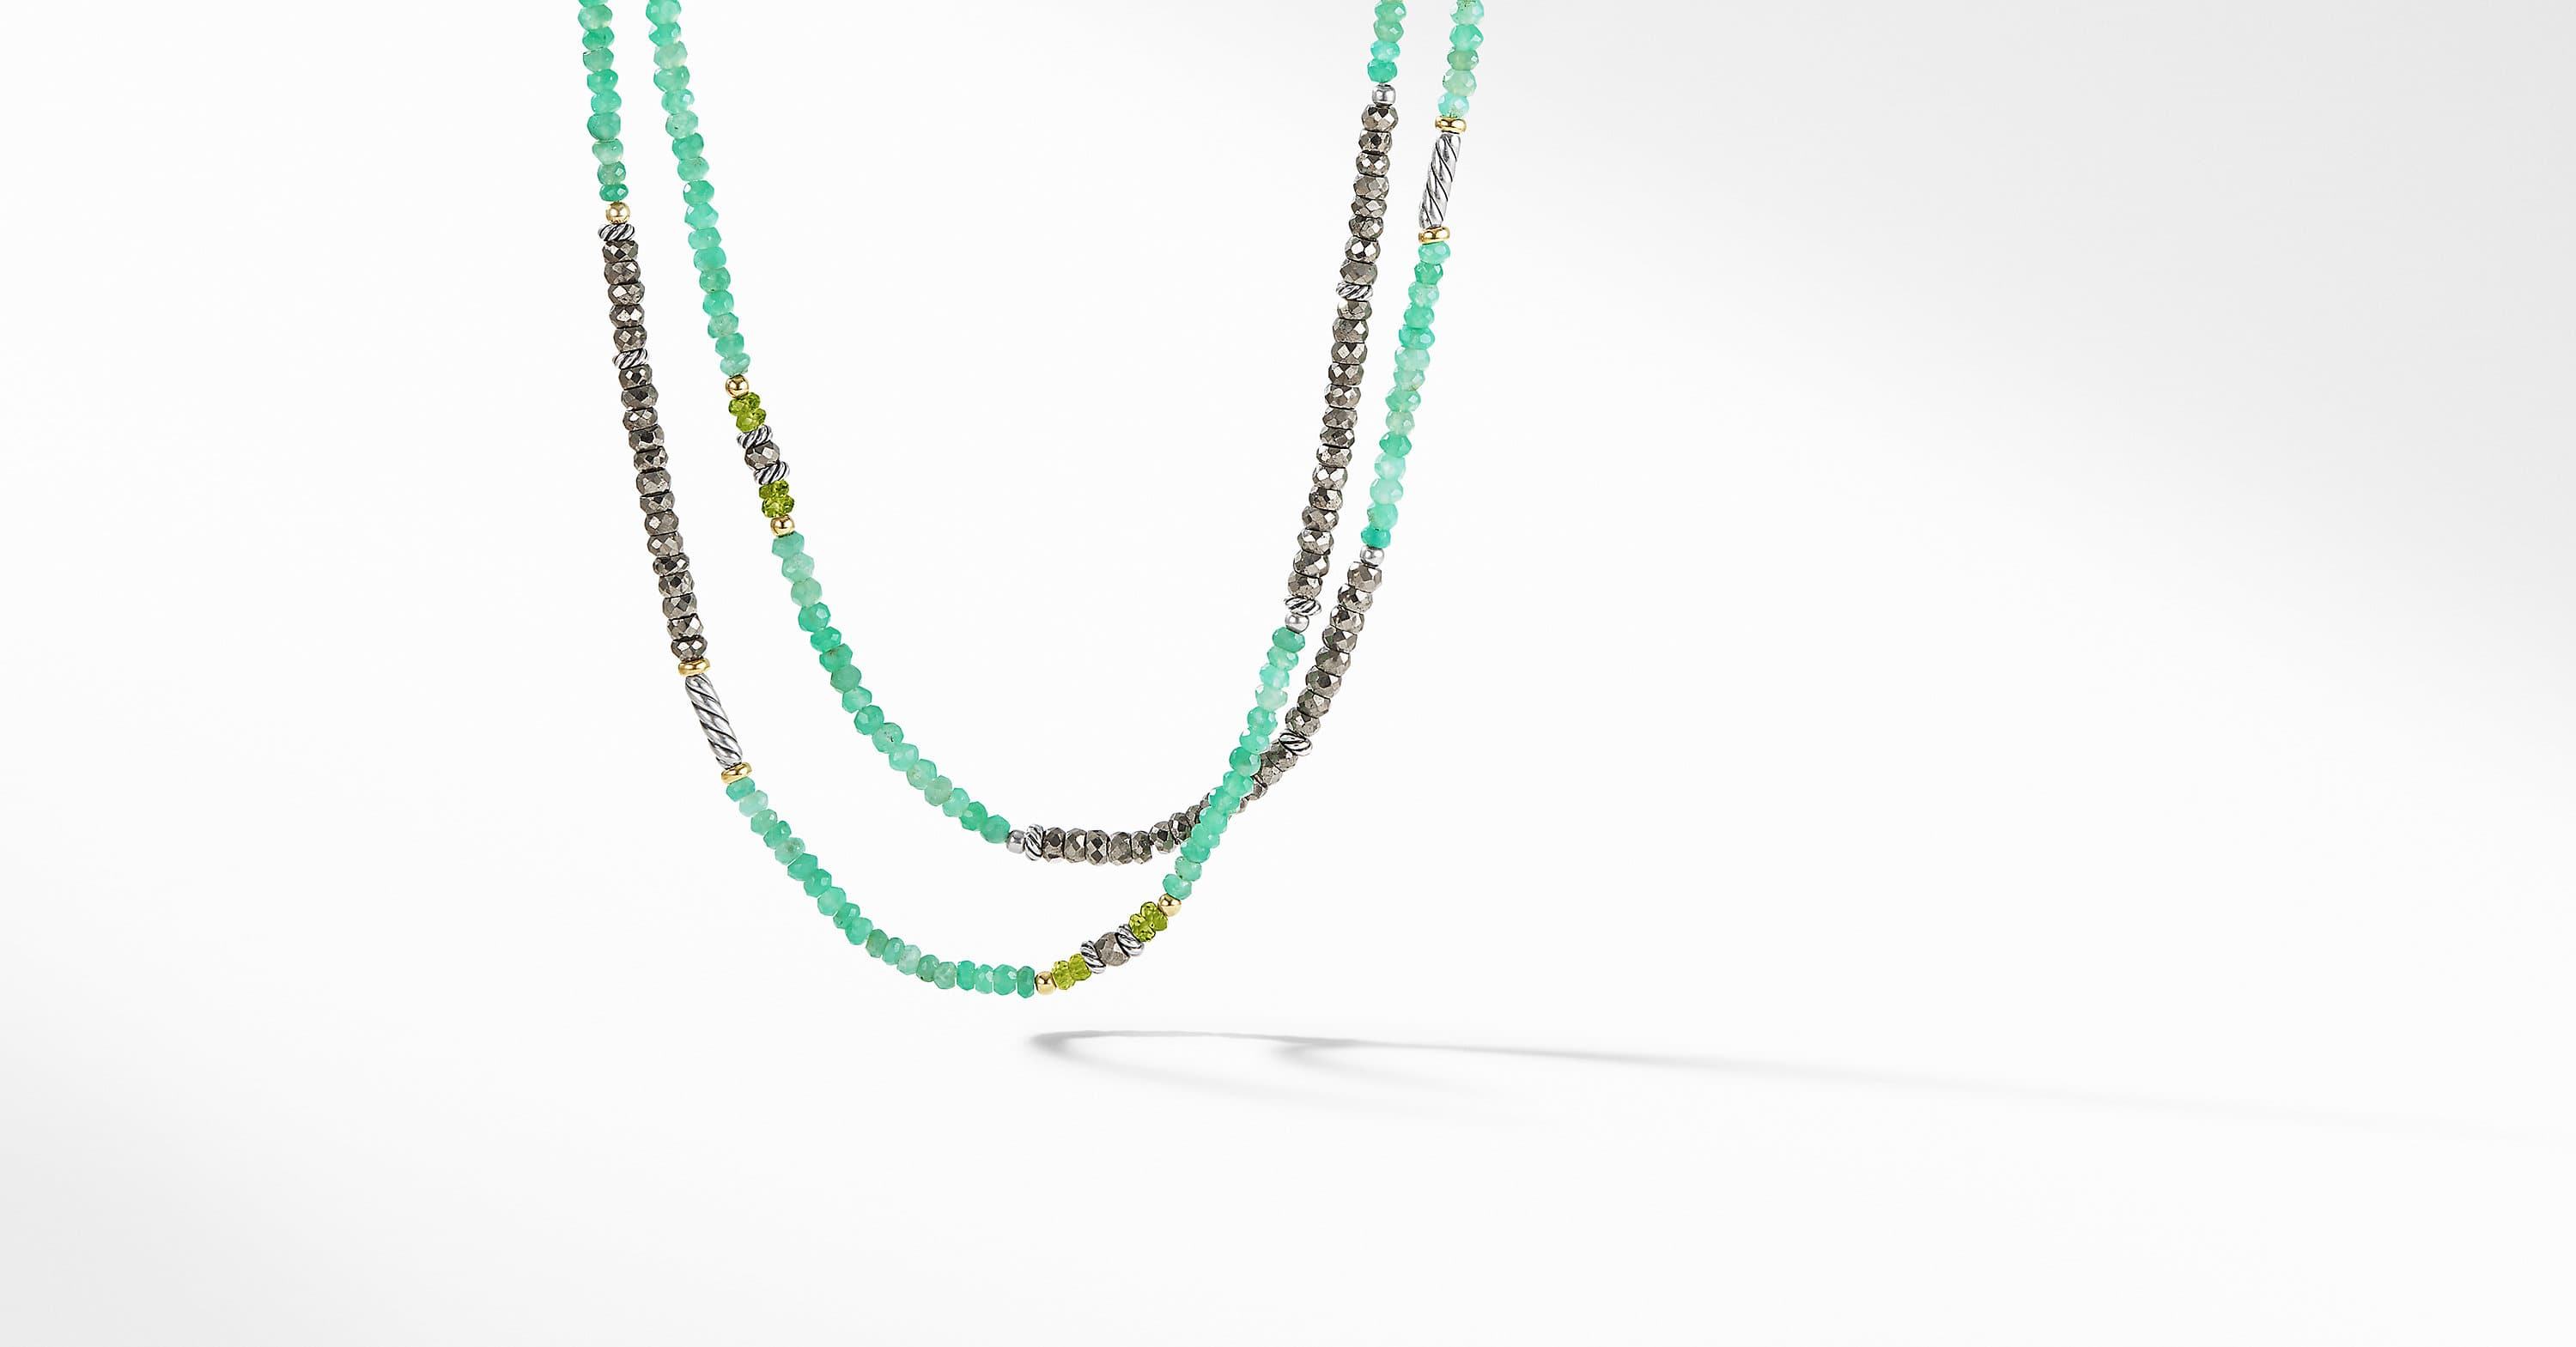 Tweejoux Bead Necklace with 18K Gold